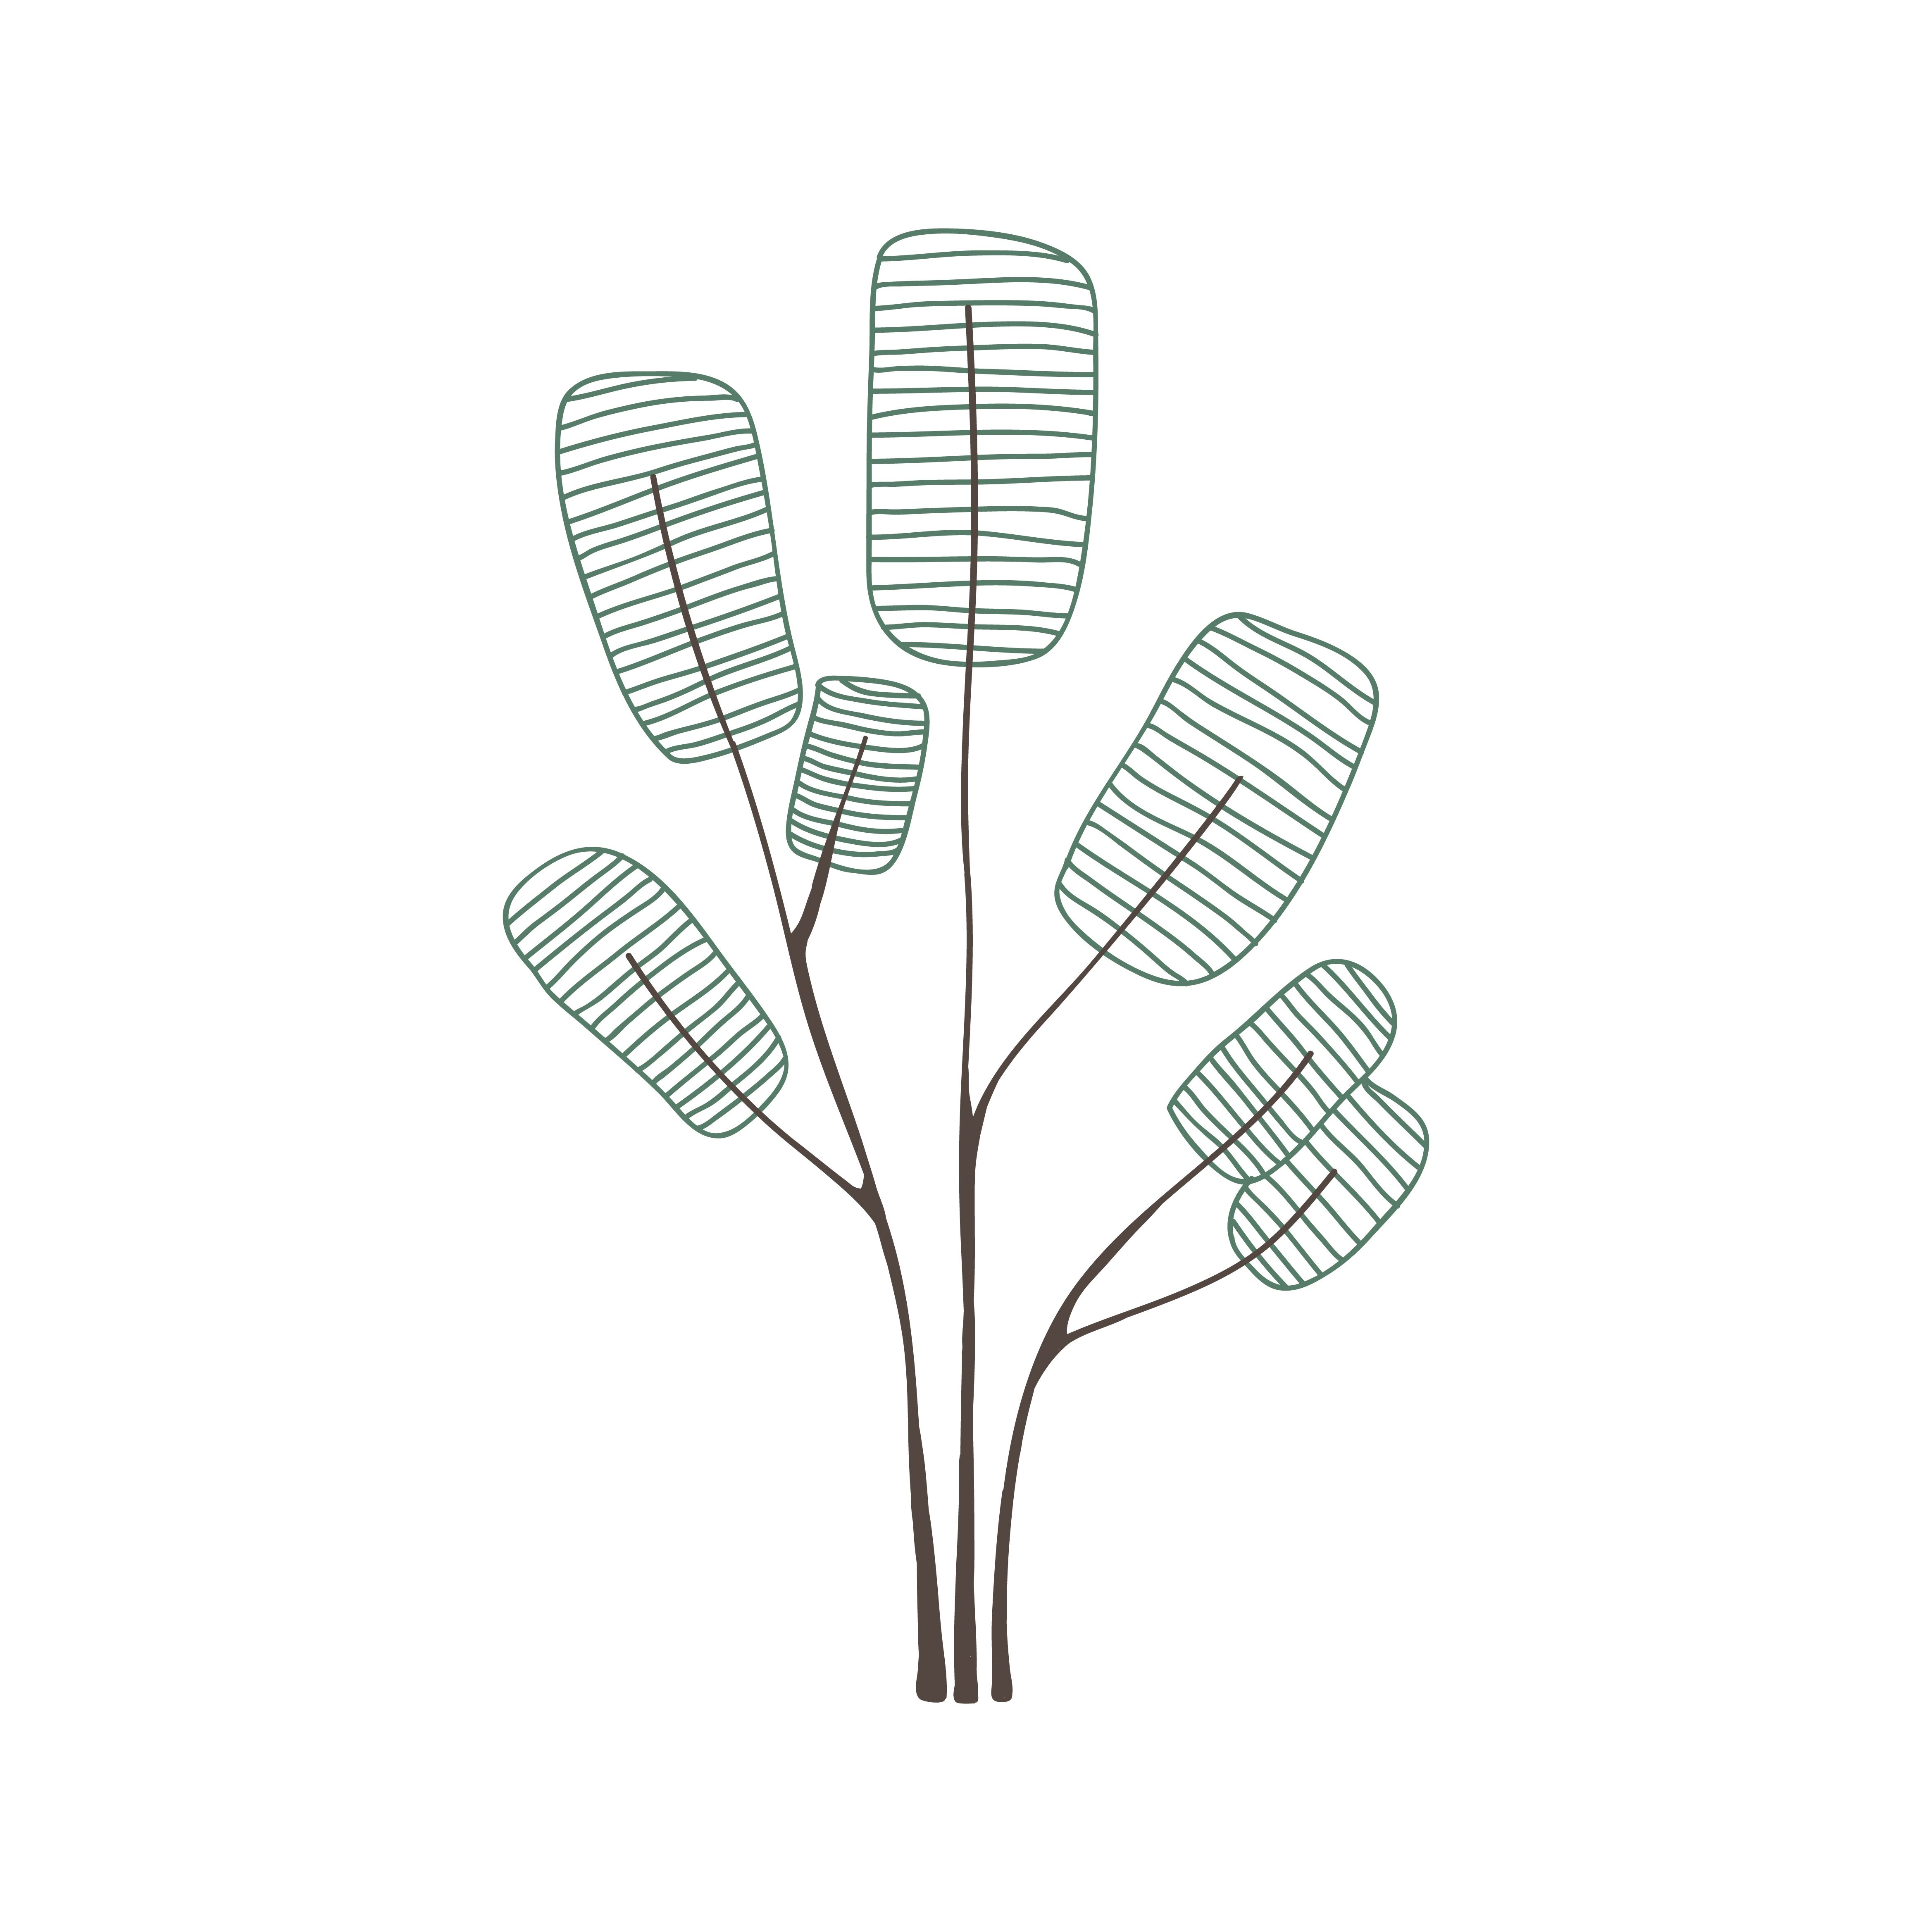 Silhouette Tree png download - 800*600 - Free Transparent Microphone png  Download. - CleanPNG / KissPNG